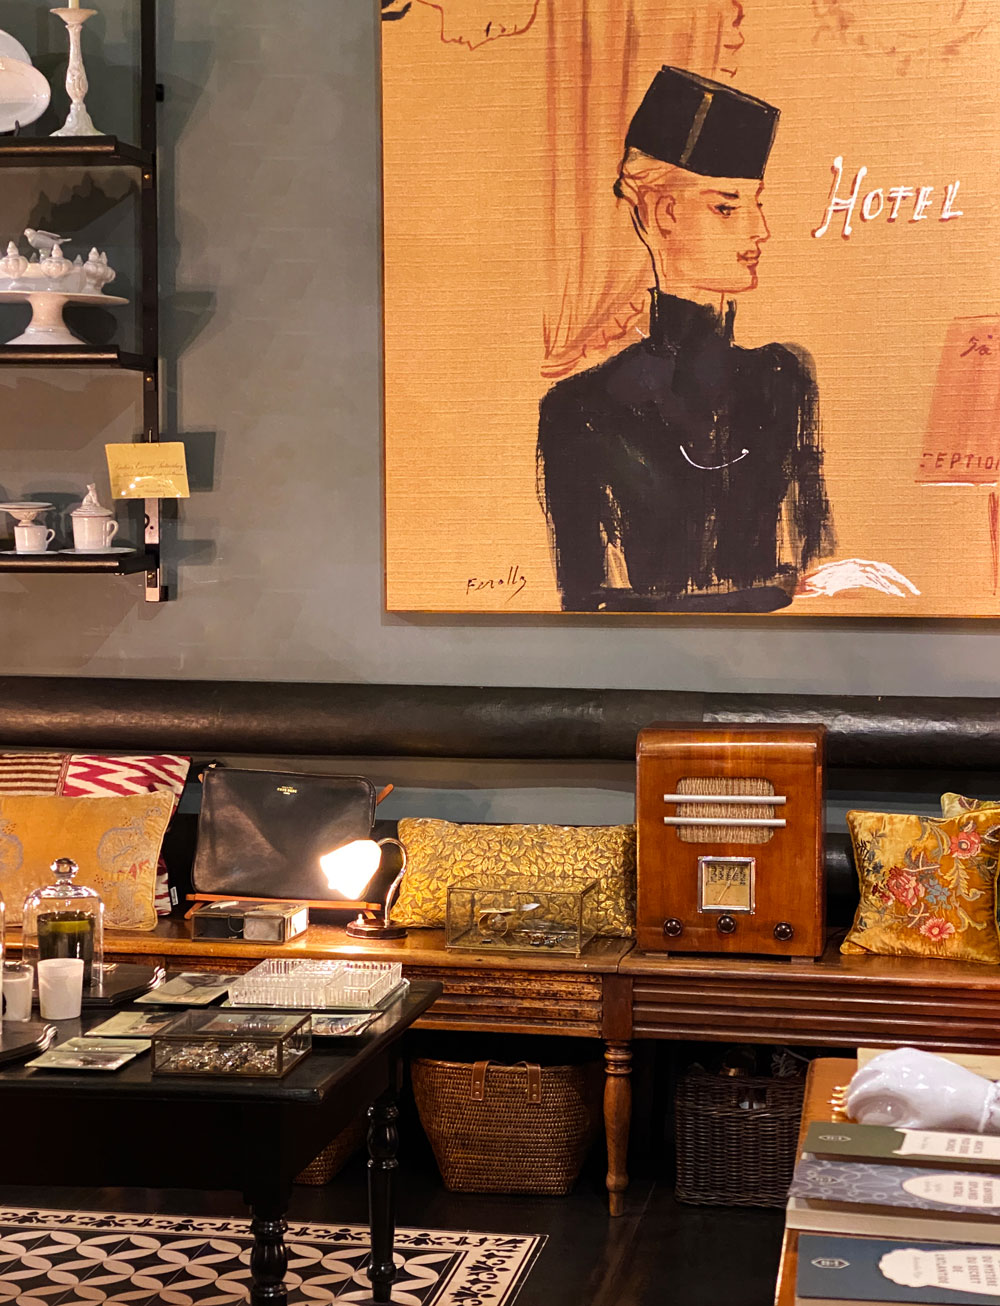 Antique pieces and a large painting inside a store.